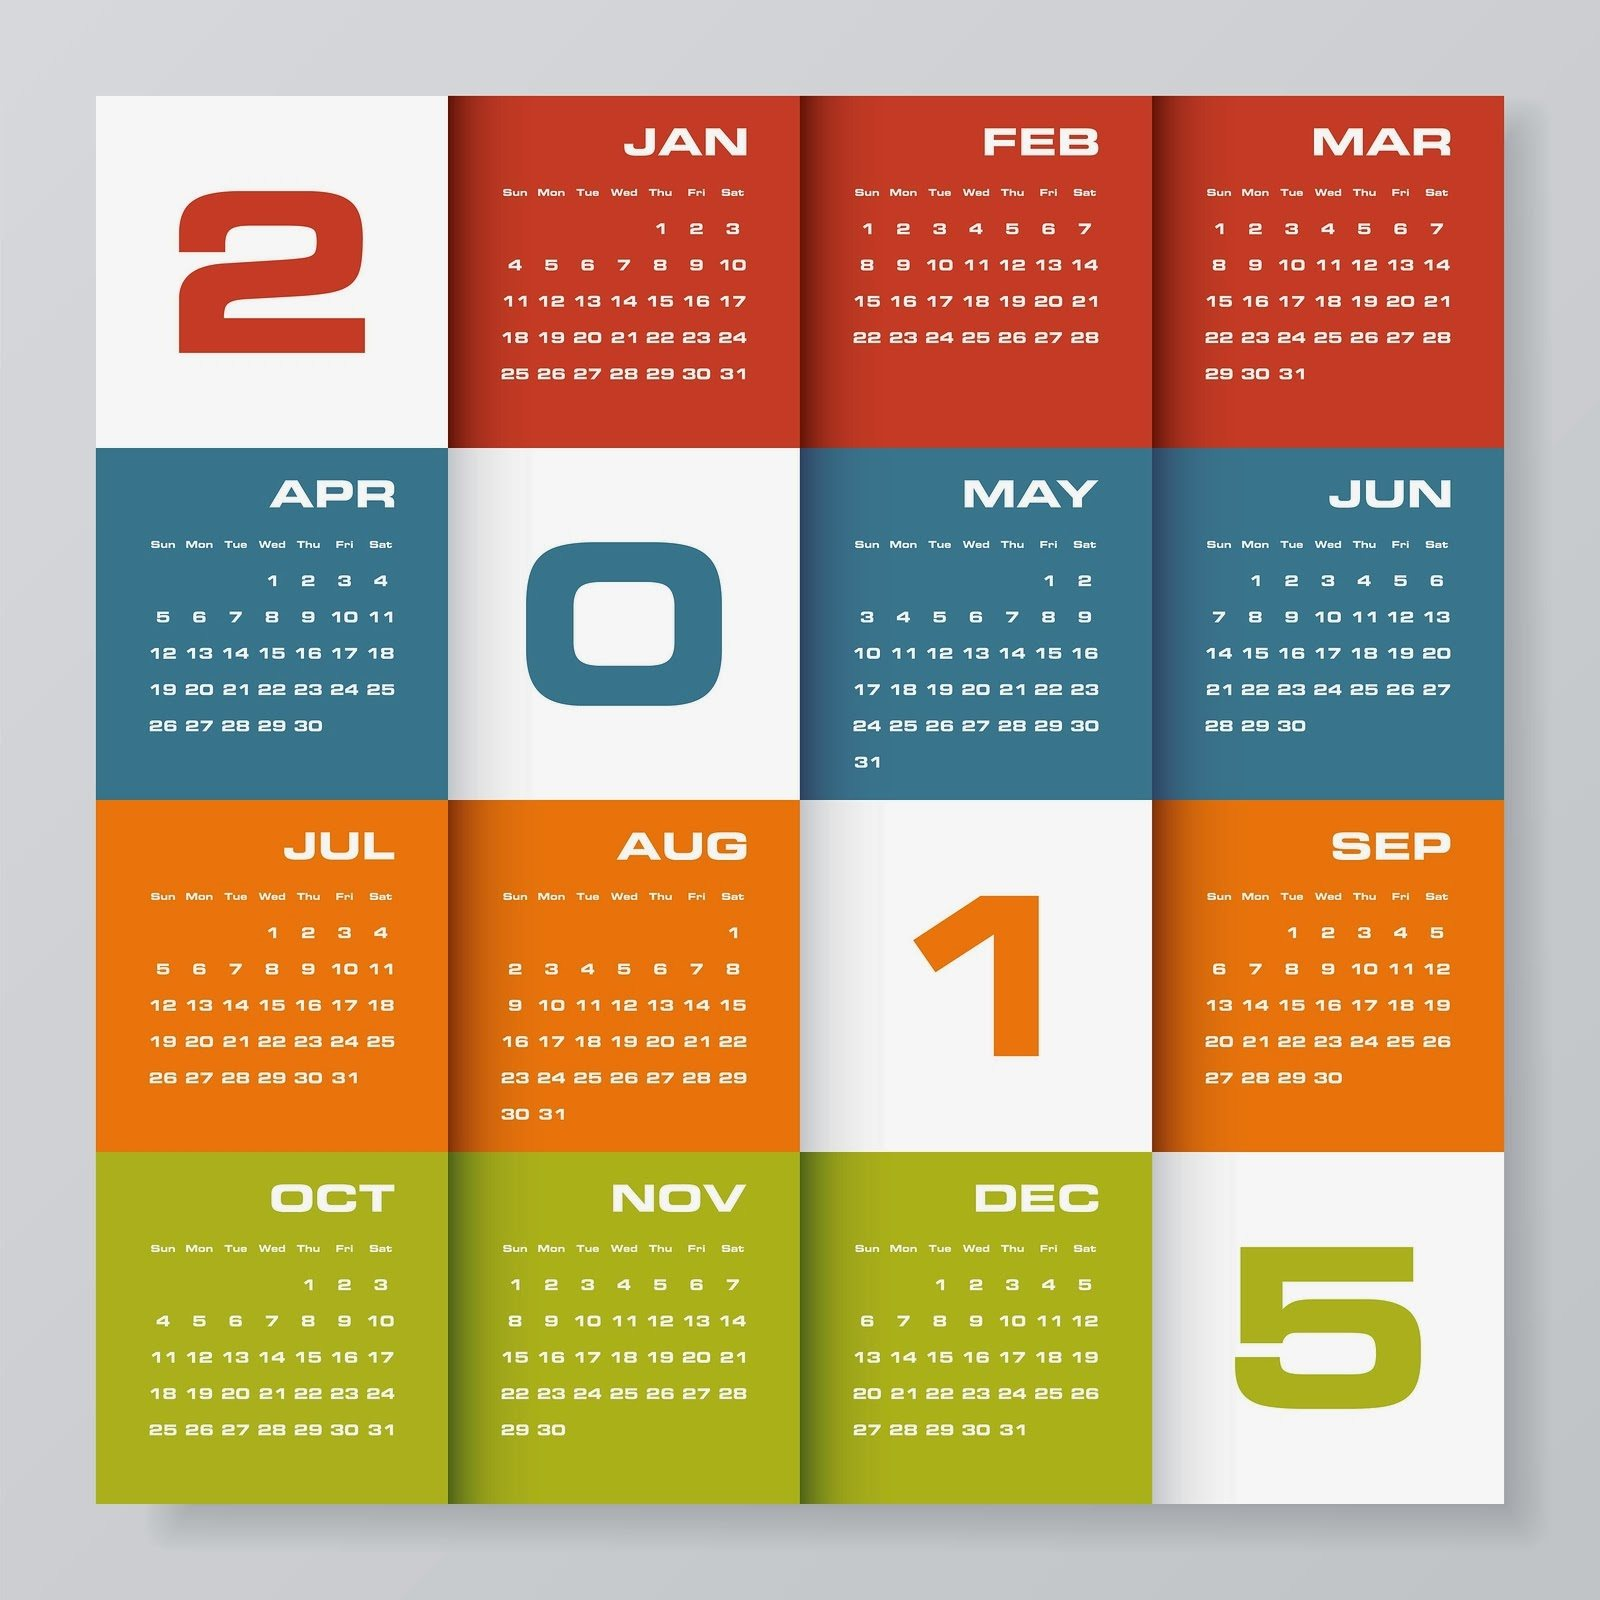 Calendar Design With Pictures : Amazing calendar for year designs